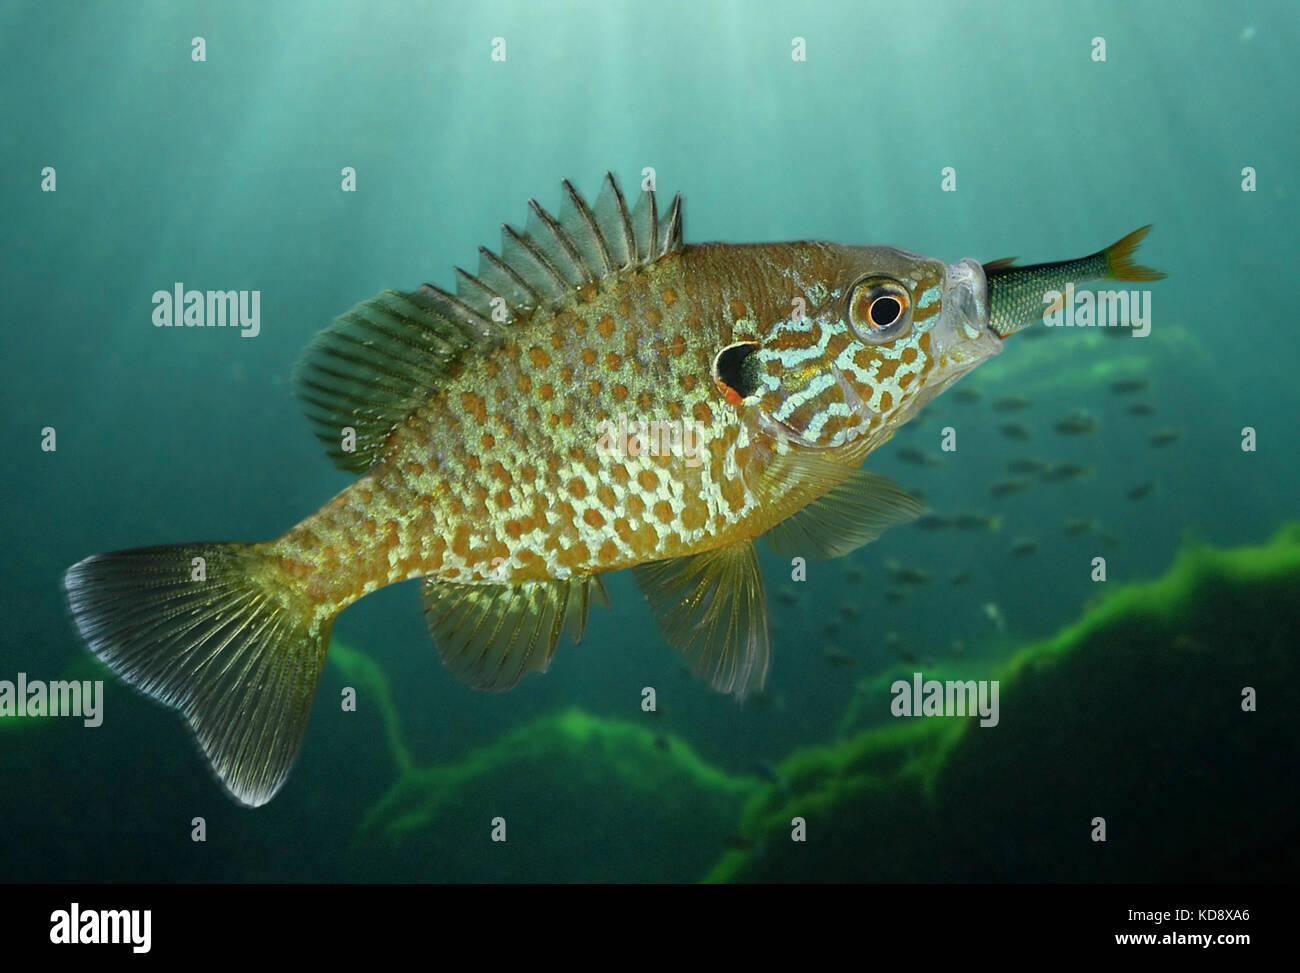 Pumpkinseed, Lepomis gibbosus. Eating a small Roach. It has been introduced in several parts of the world as a sport - Stock Image